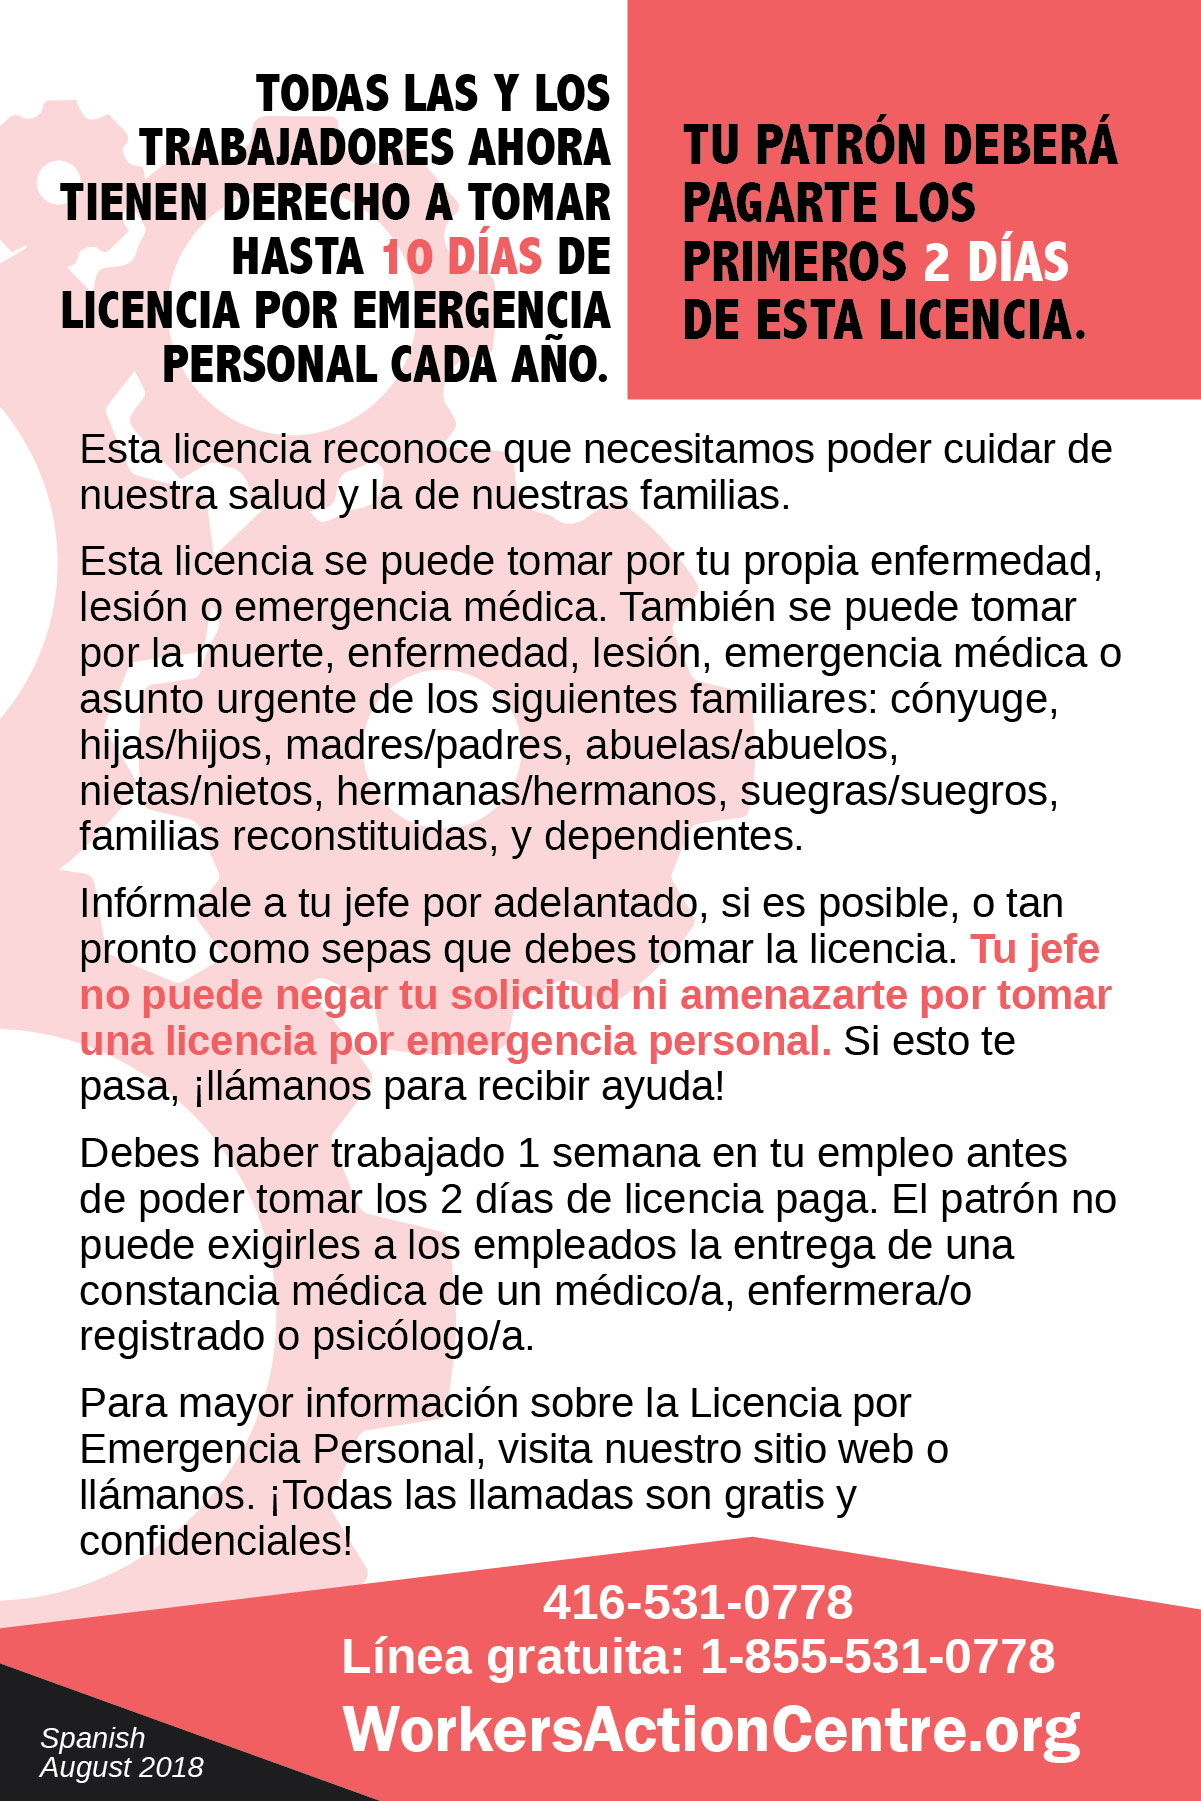 Spanish personal emergency leave postcard